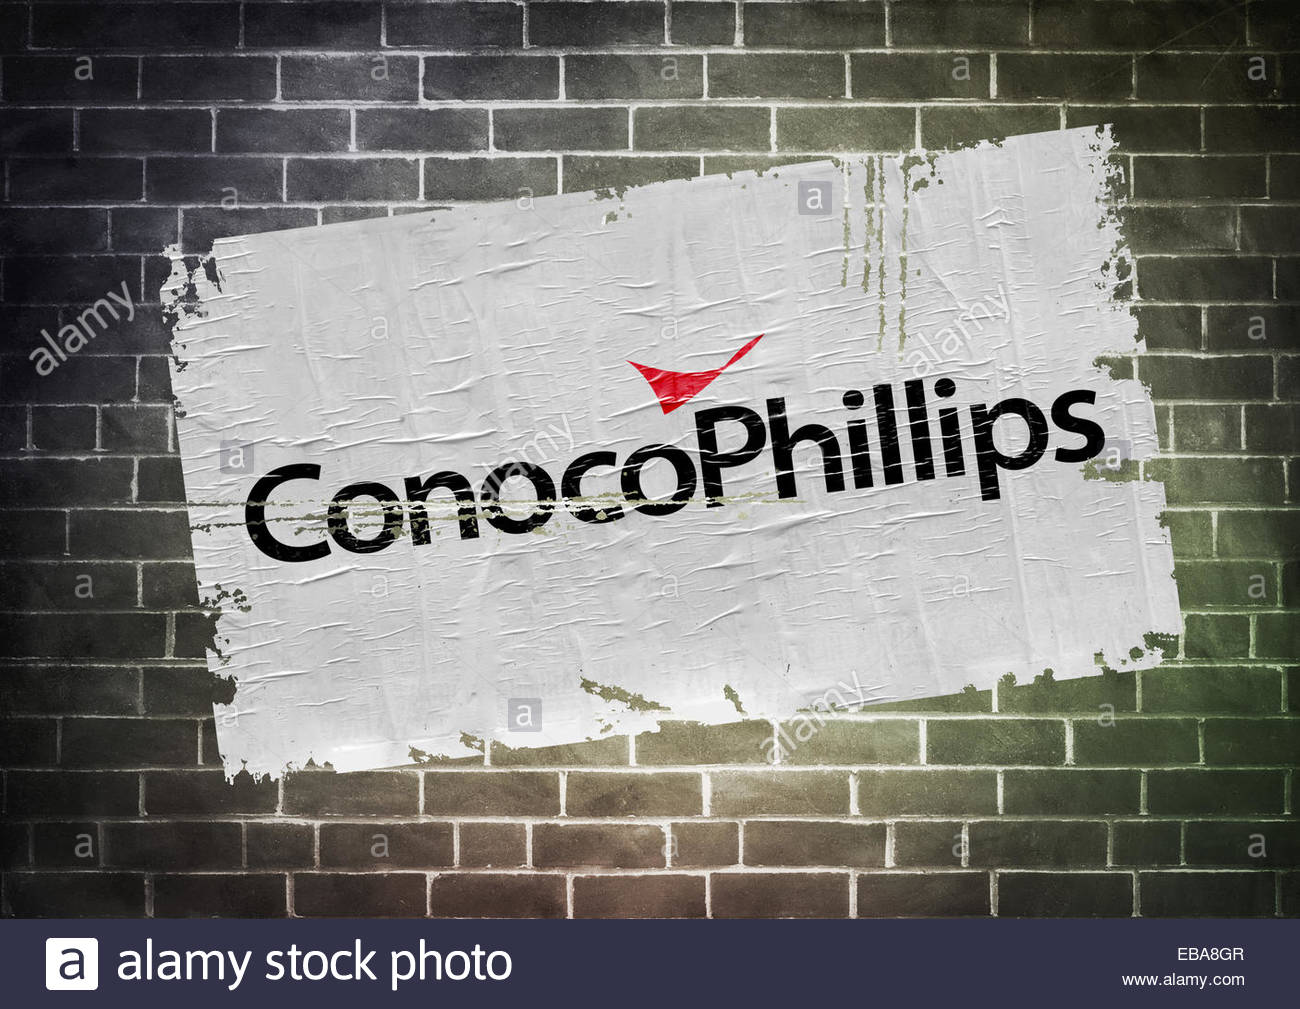 Conocophillips Fracking Company Logo Icon Poster Stock Photo